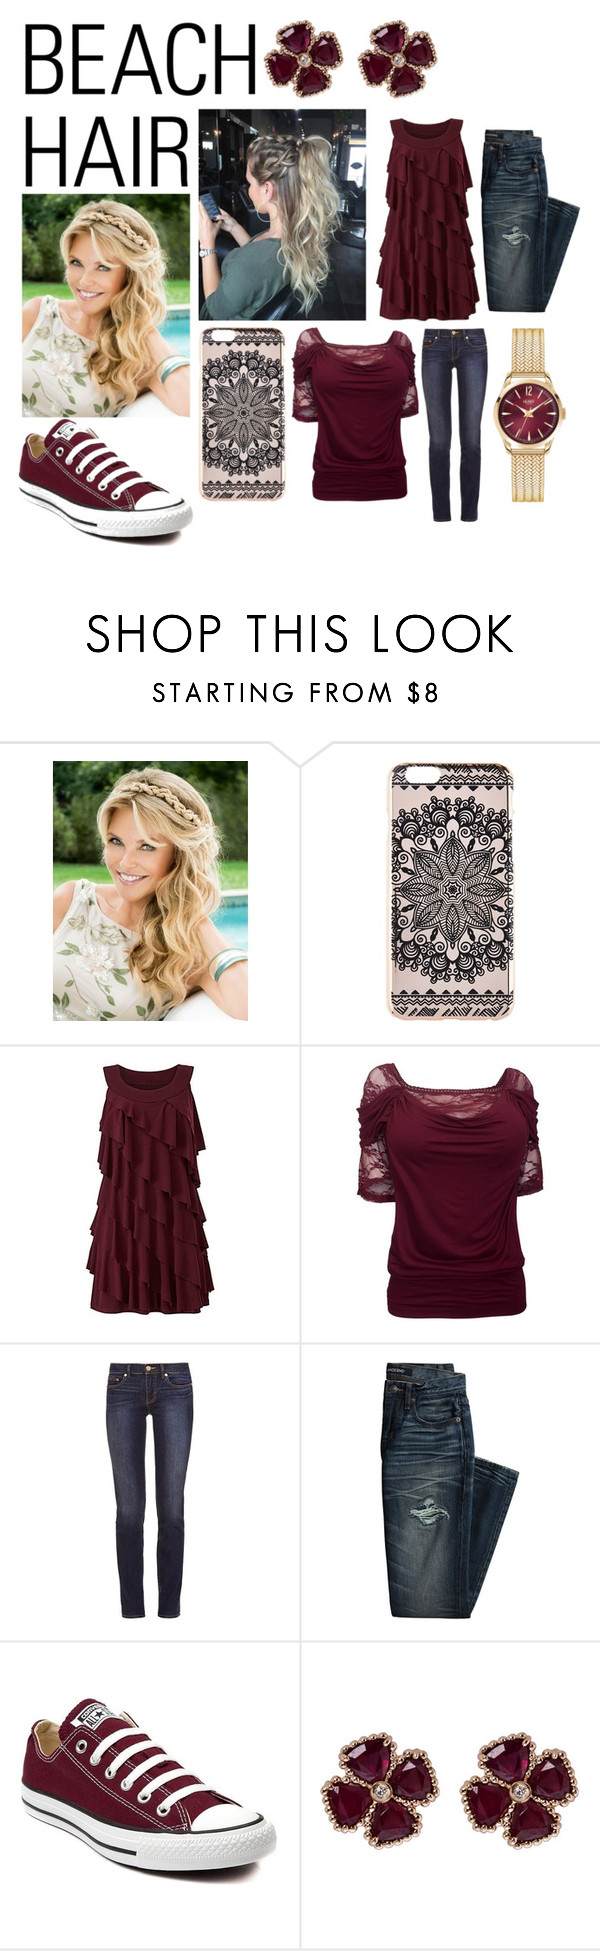 """Style Hair"" by carmen-41-navarro on Polyvore featuring beauty, New Look, Tory Burch, Canvas by Lands' End, Converse, Carla Amorim, Henry London and beachhair"